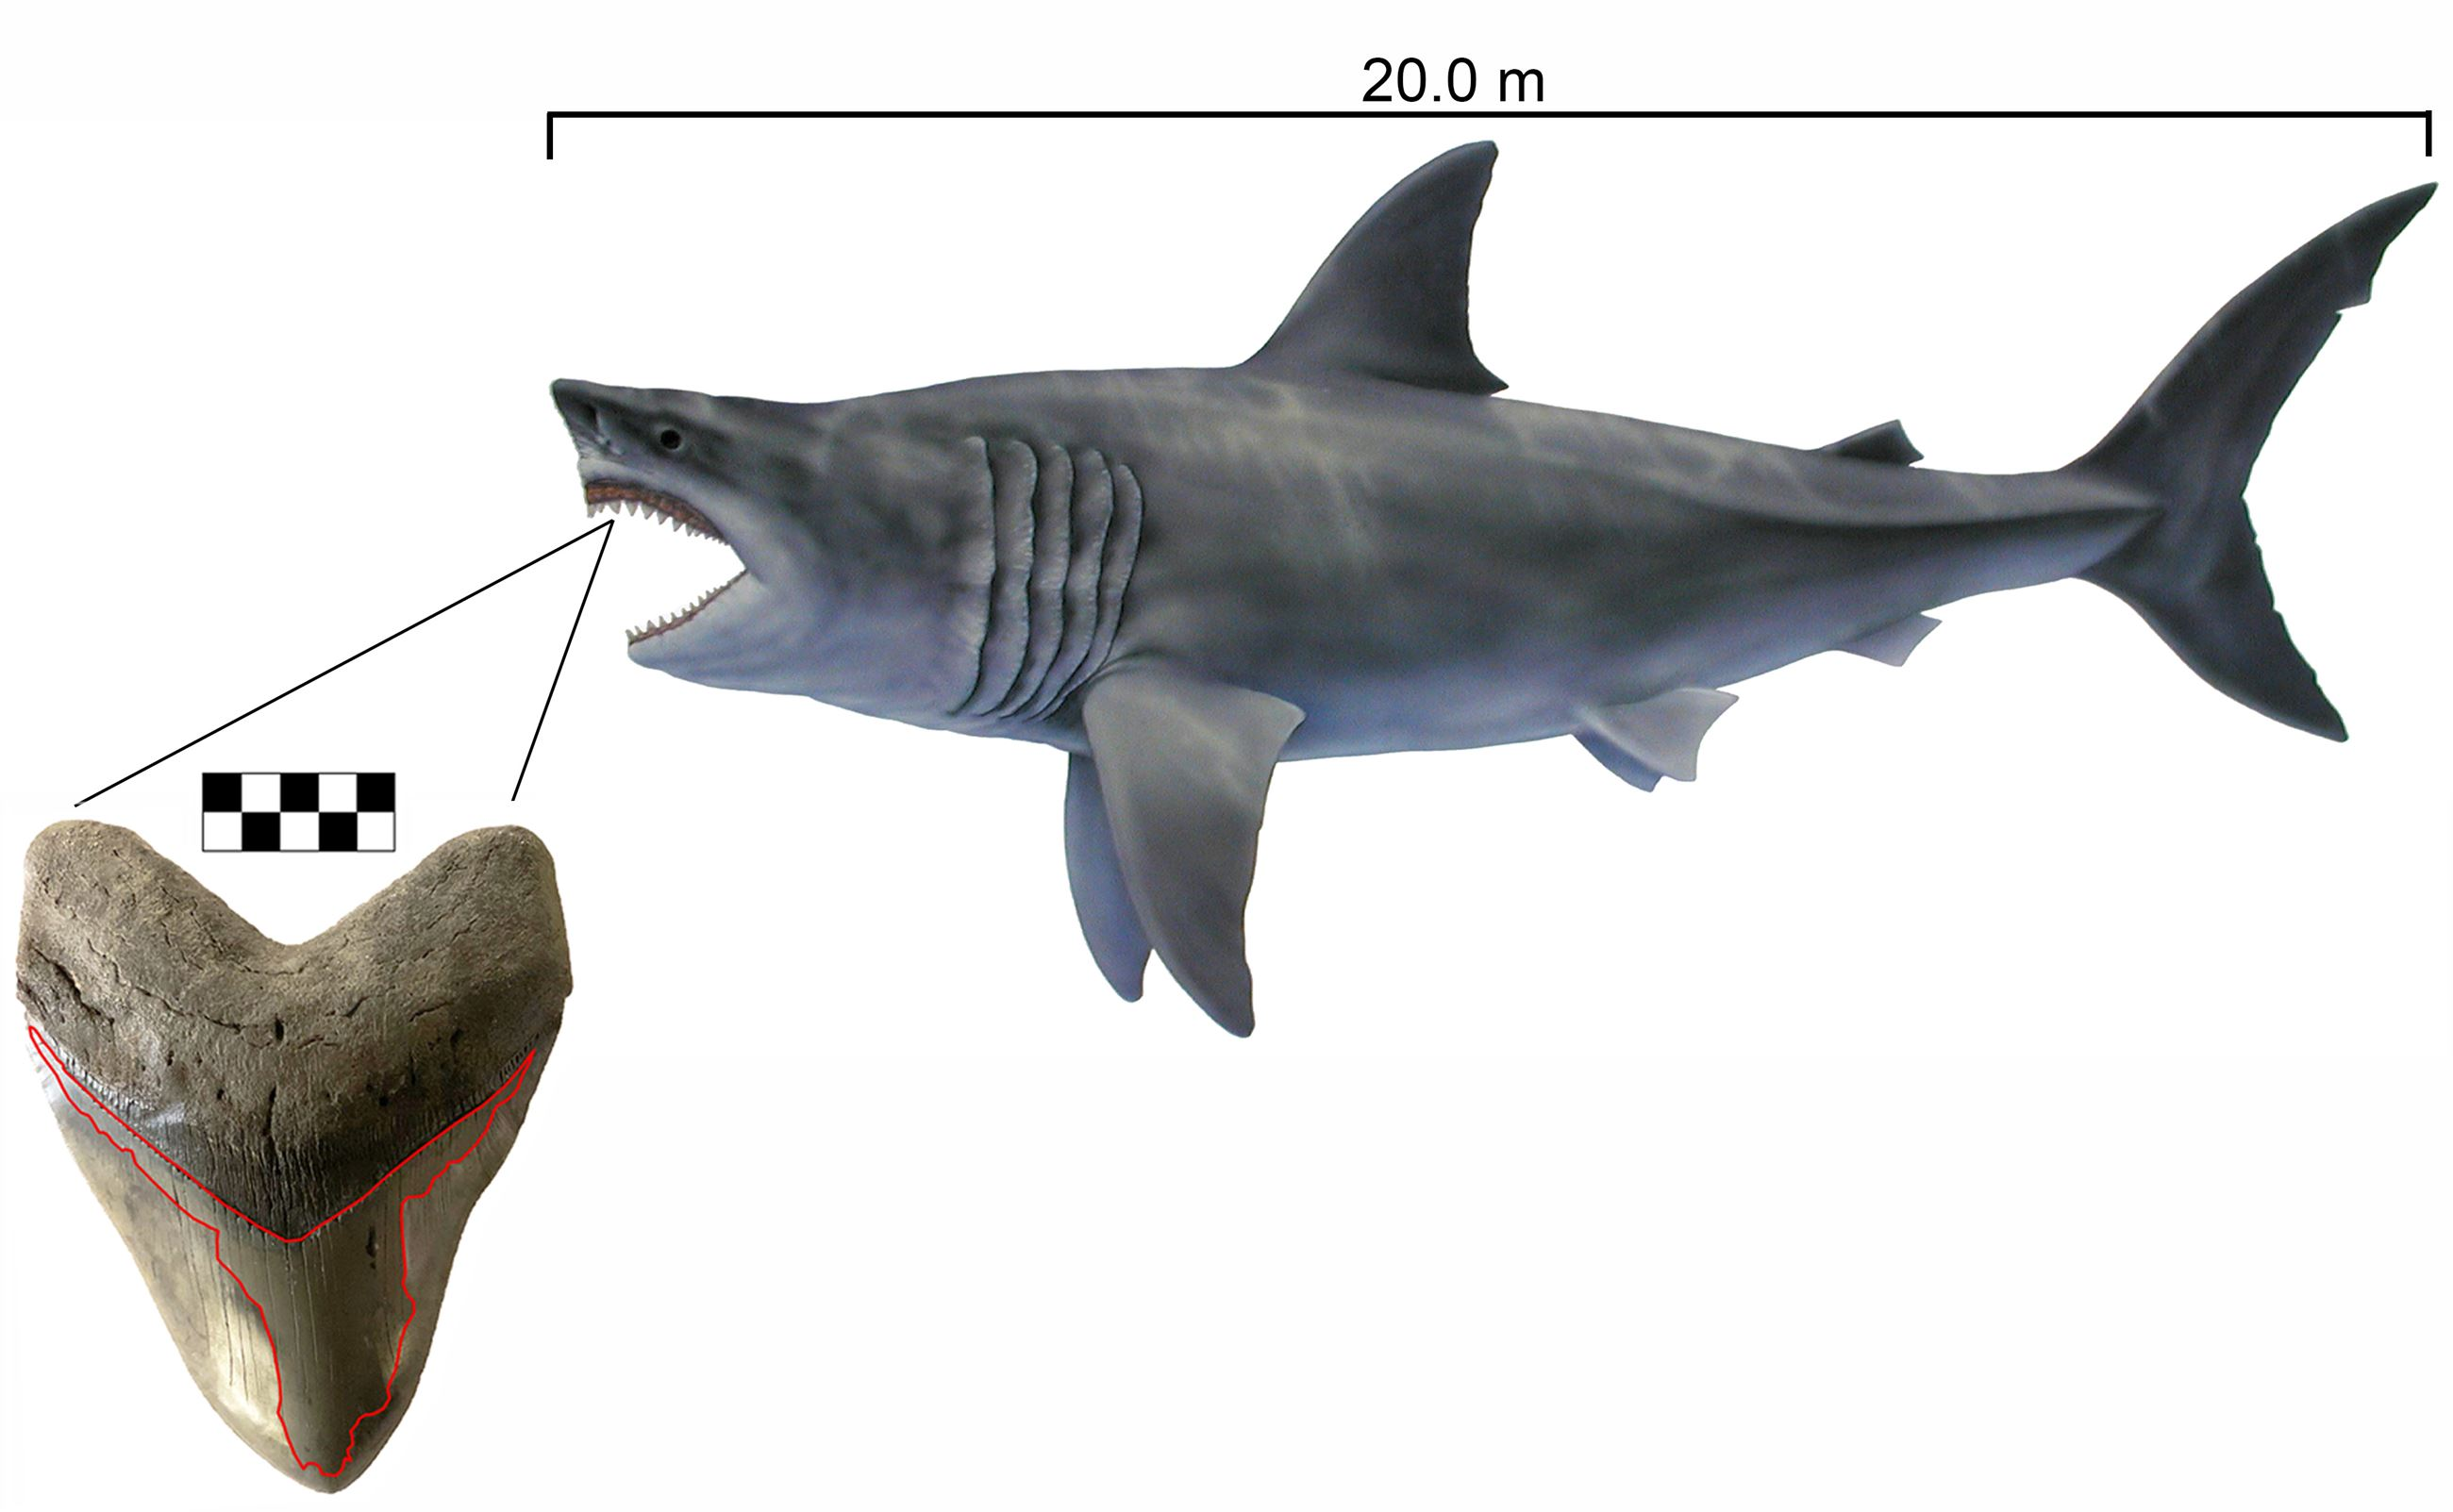 most complete associated dentition of Megalodon